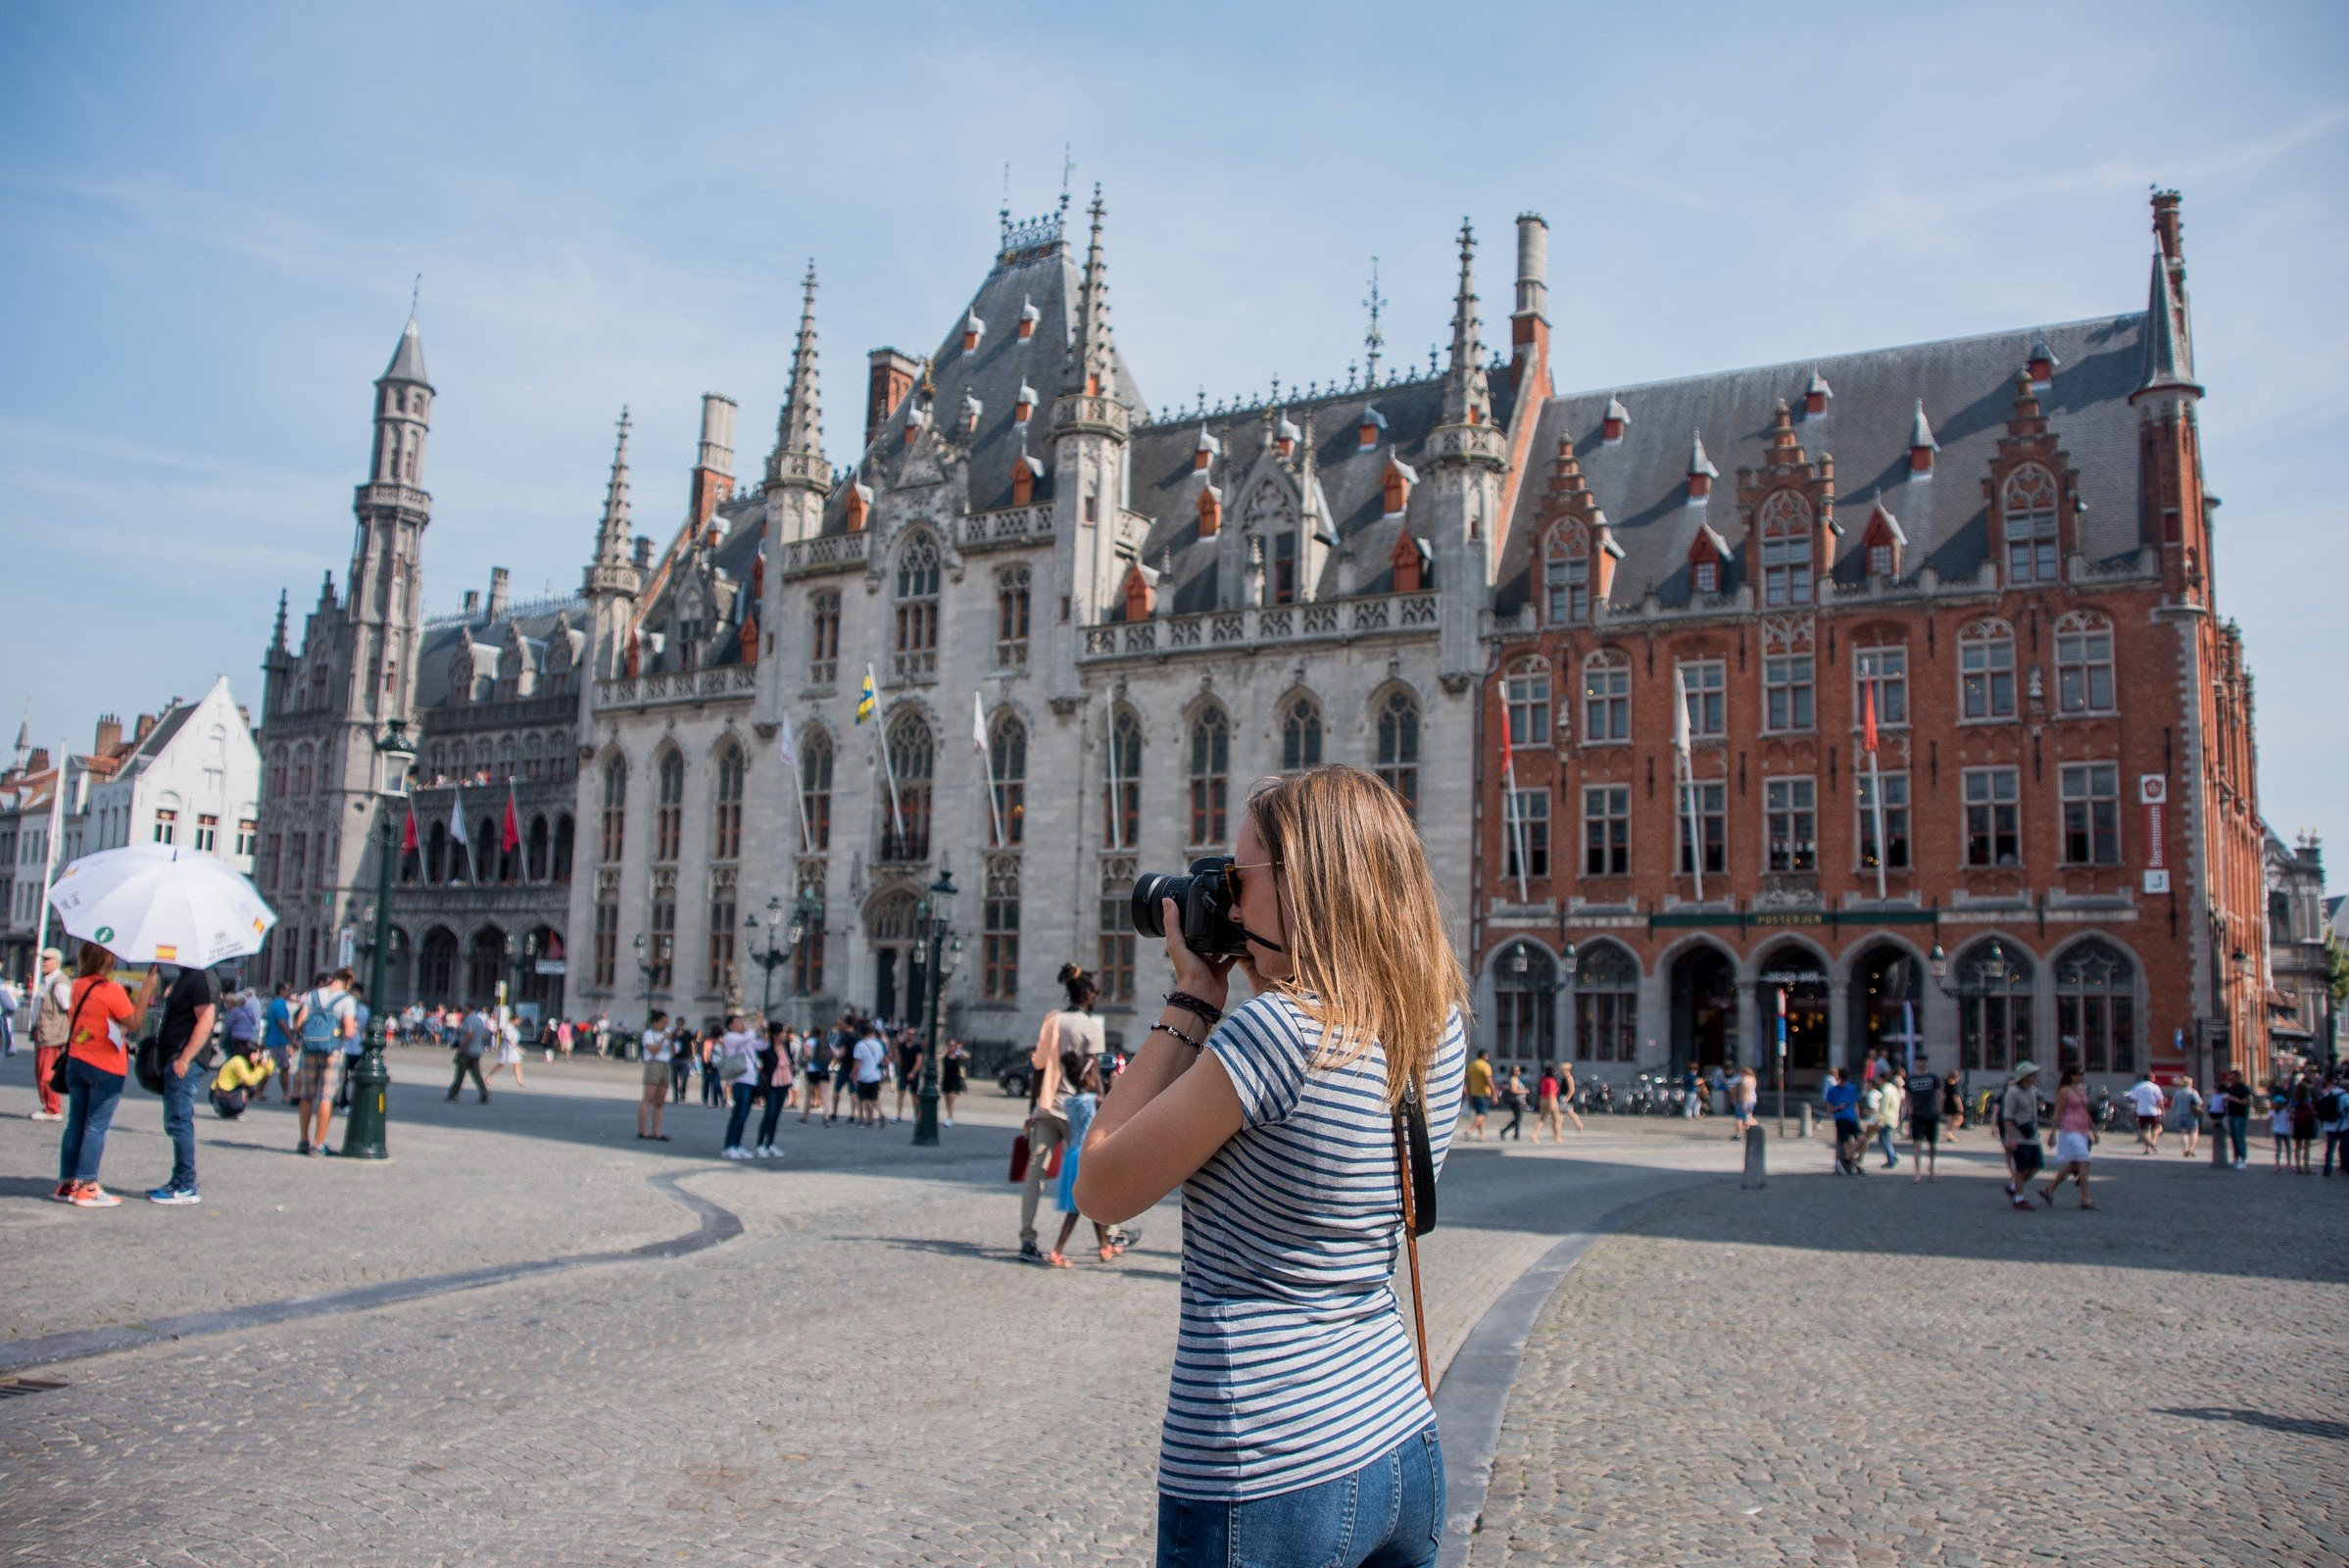 Markt Square - A Travel Guide to Bruges, Belgium